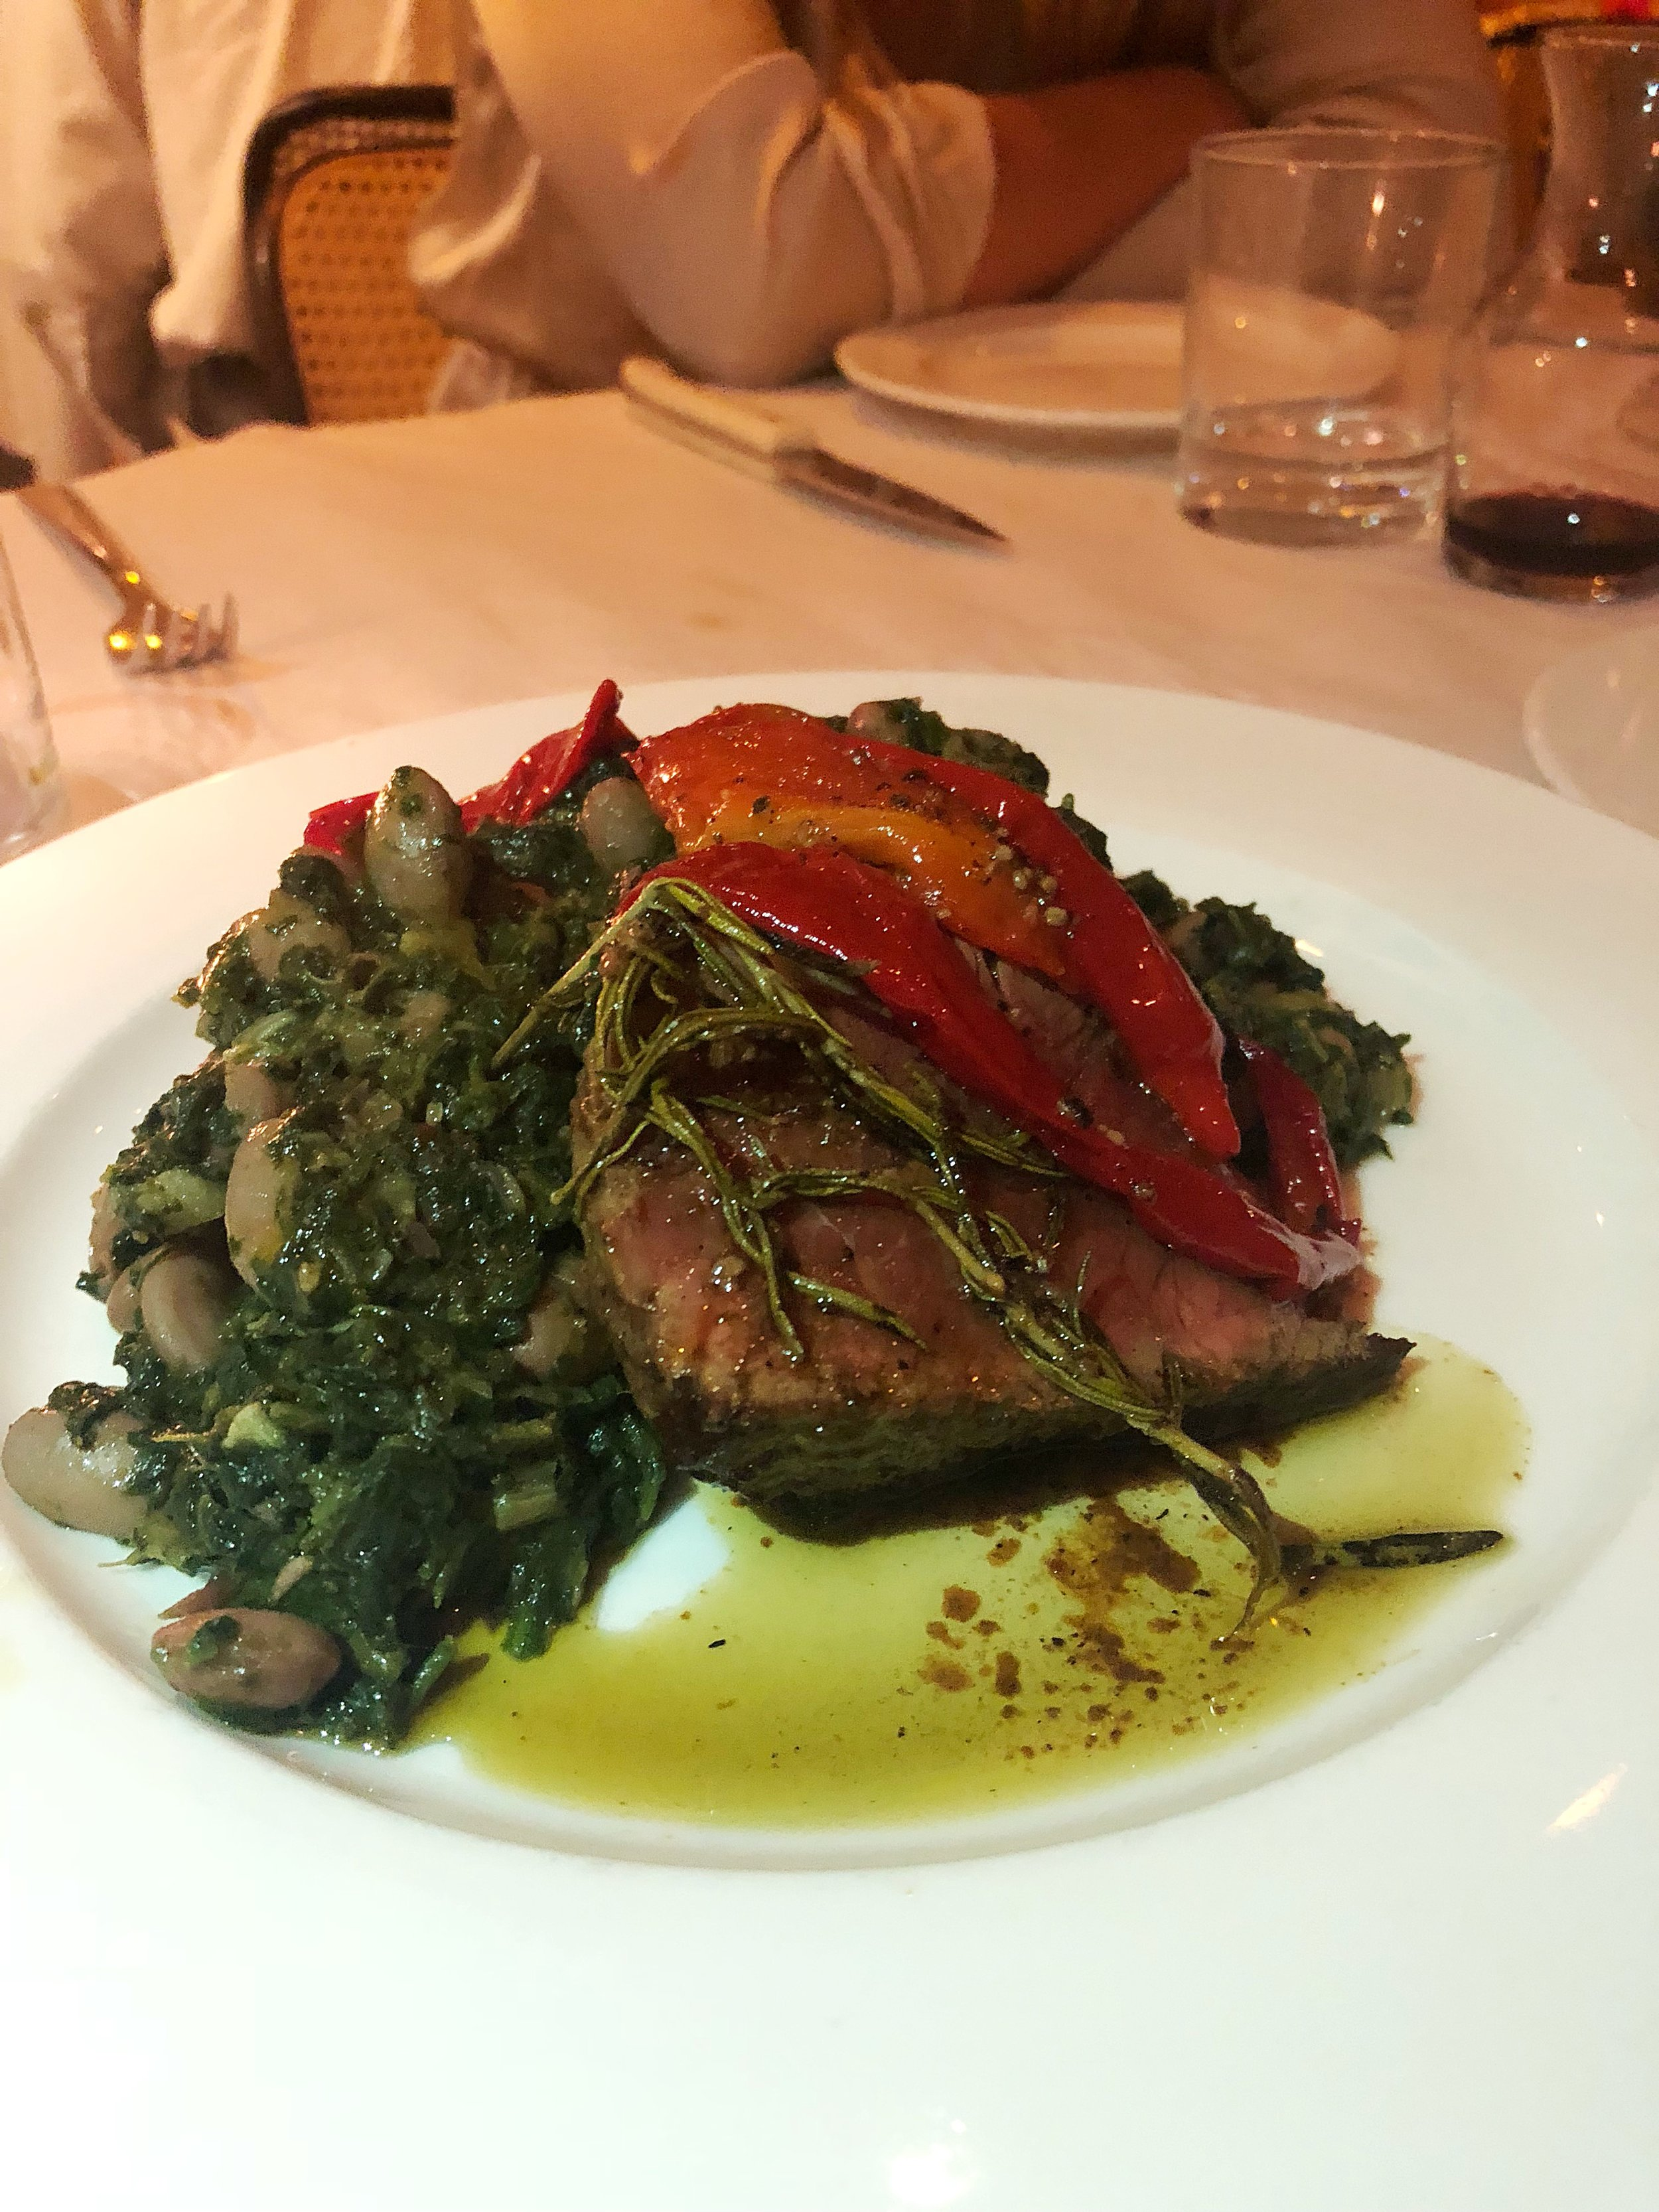 Sirloin over rosemary branches and peppers